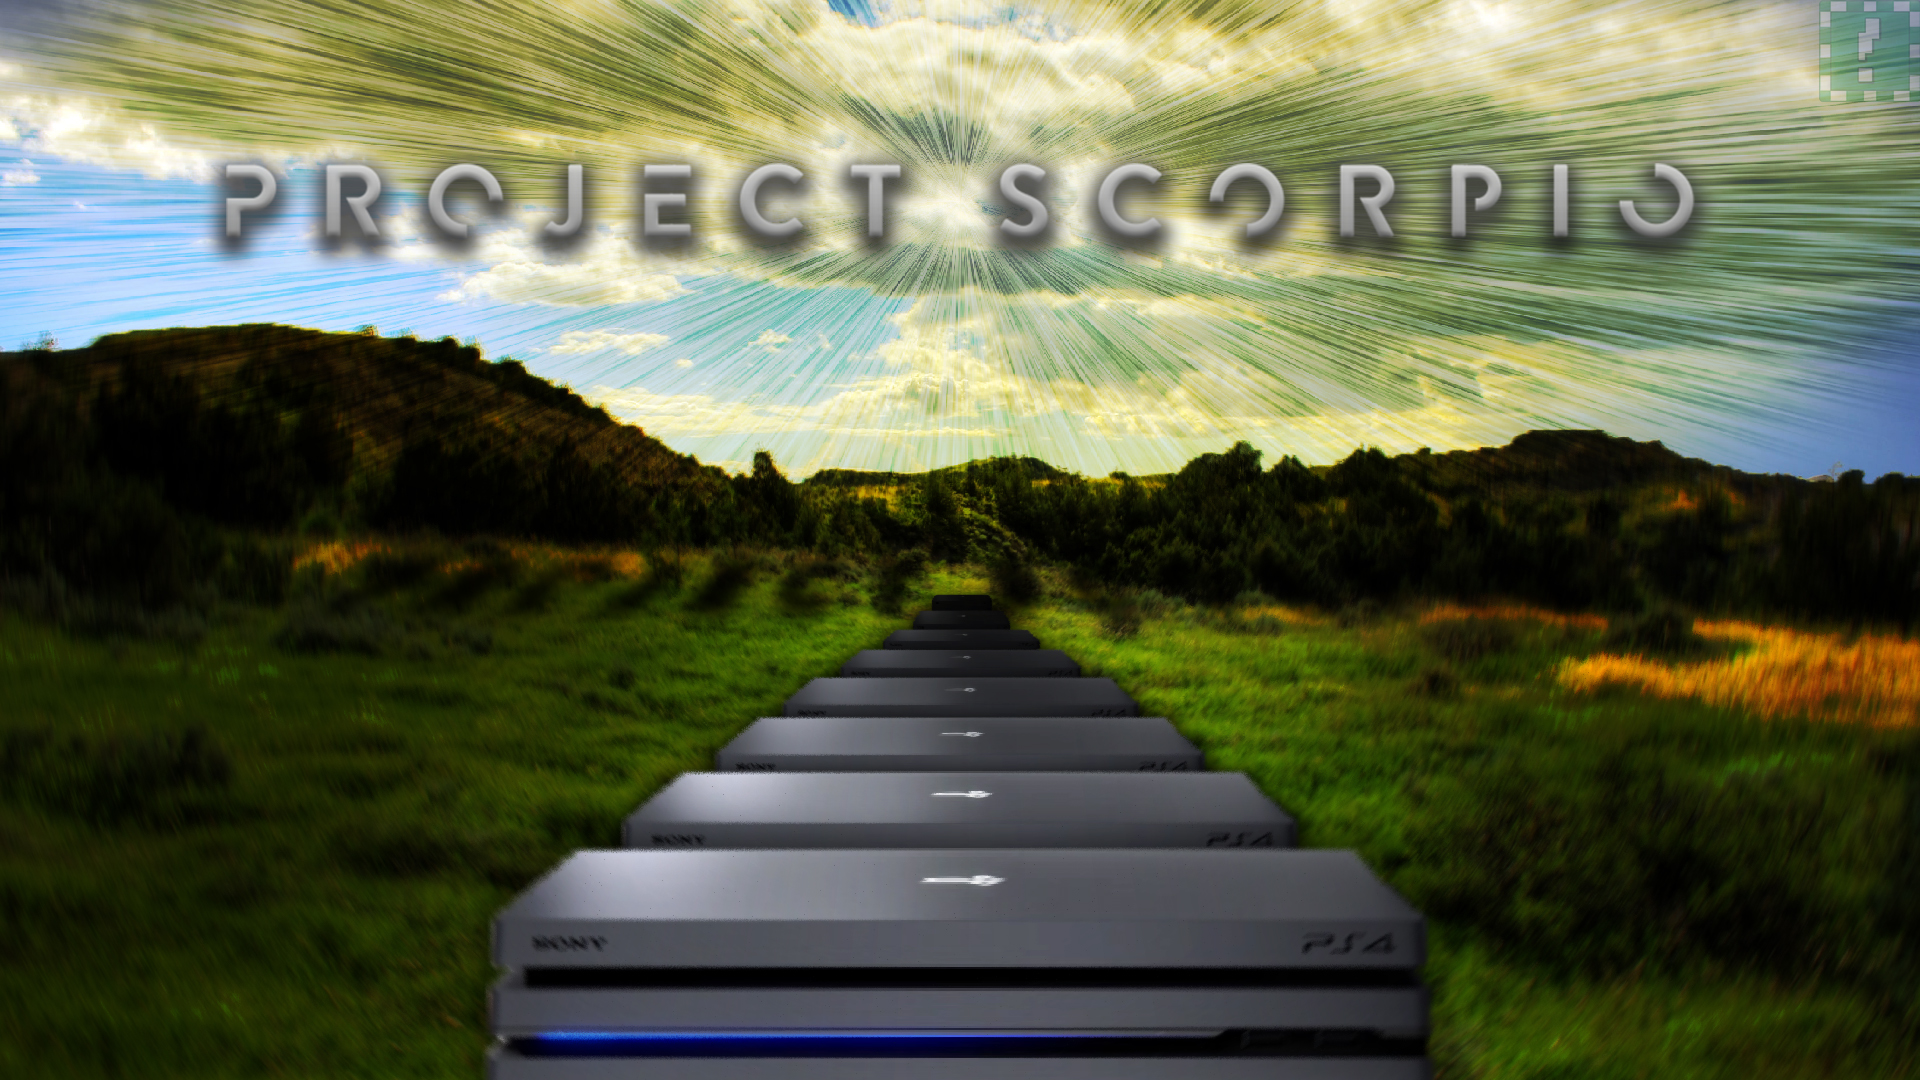 Opinion: Sony's Playstation 4 Pro Paves The Way For Project Scorpio